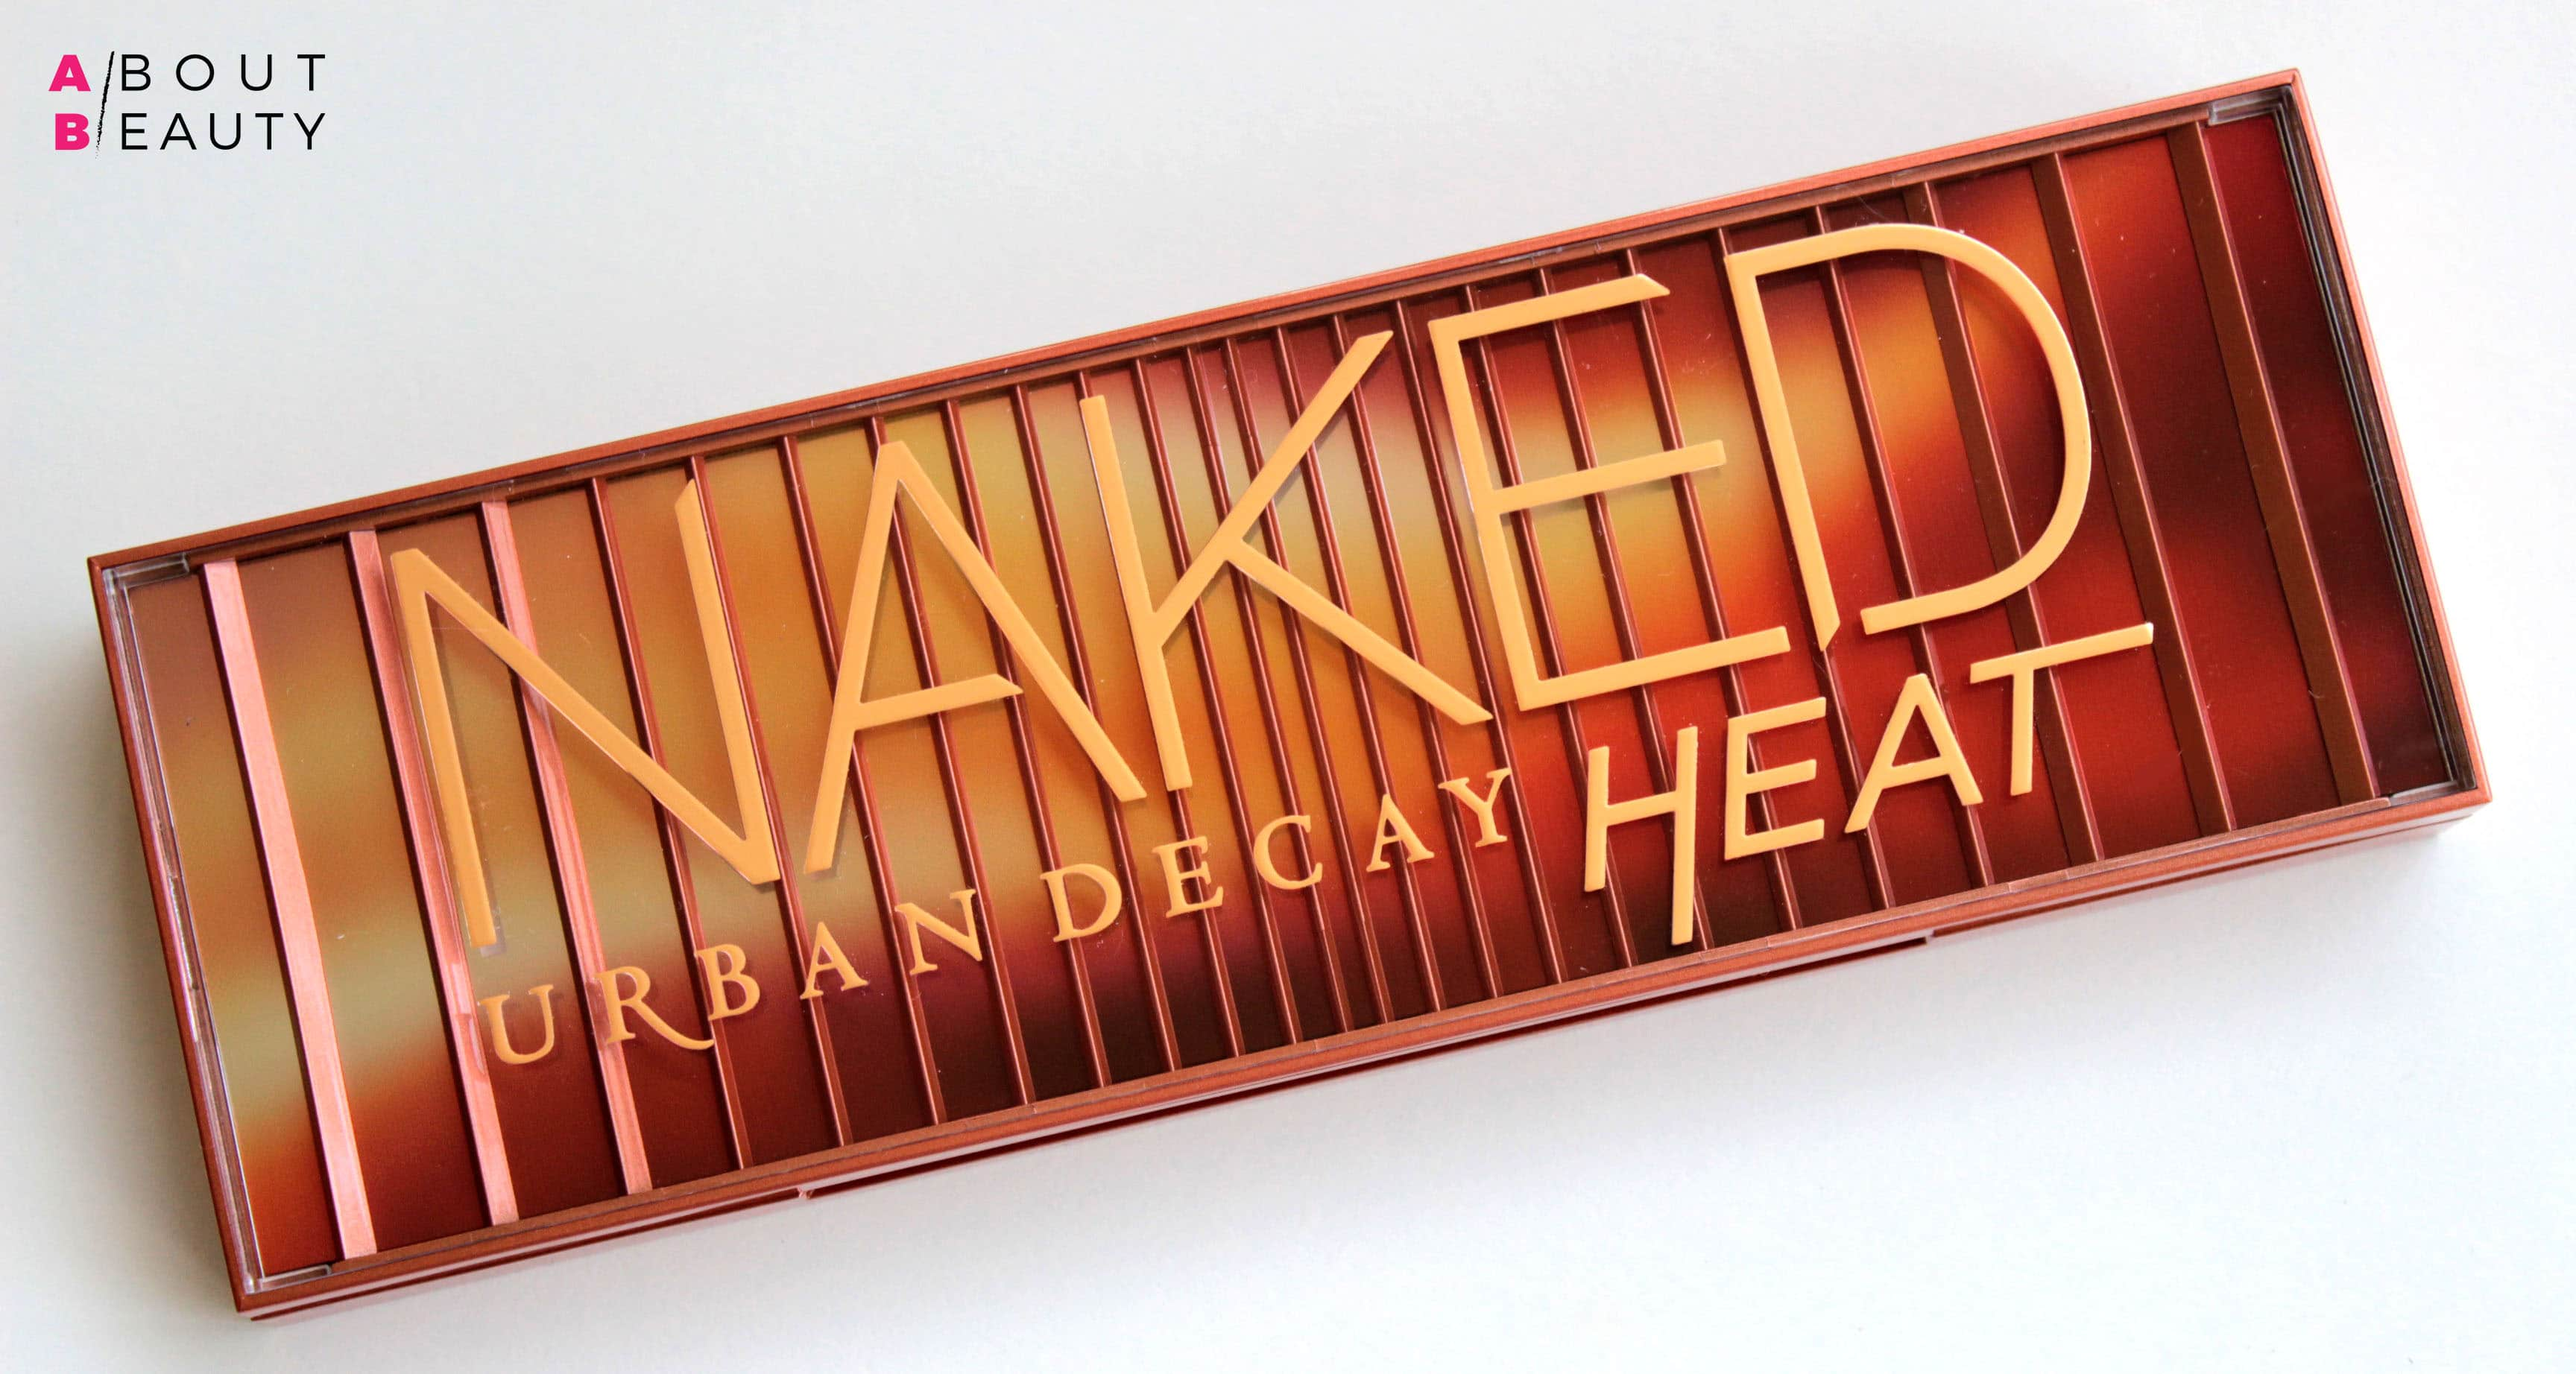 Urban Decay Naked Heat Collection - Swatch, info, prezzi e recensione | Il packaging